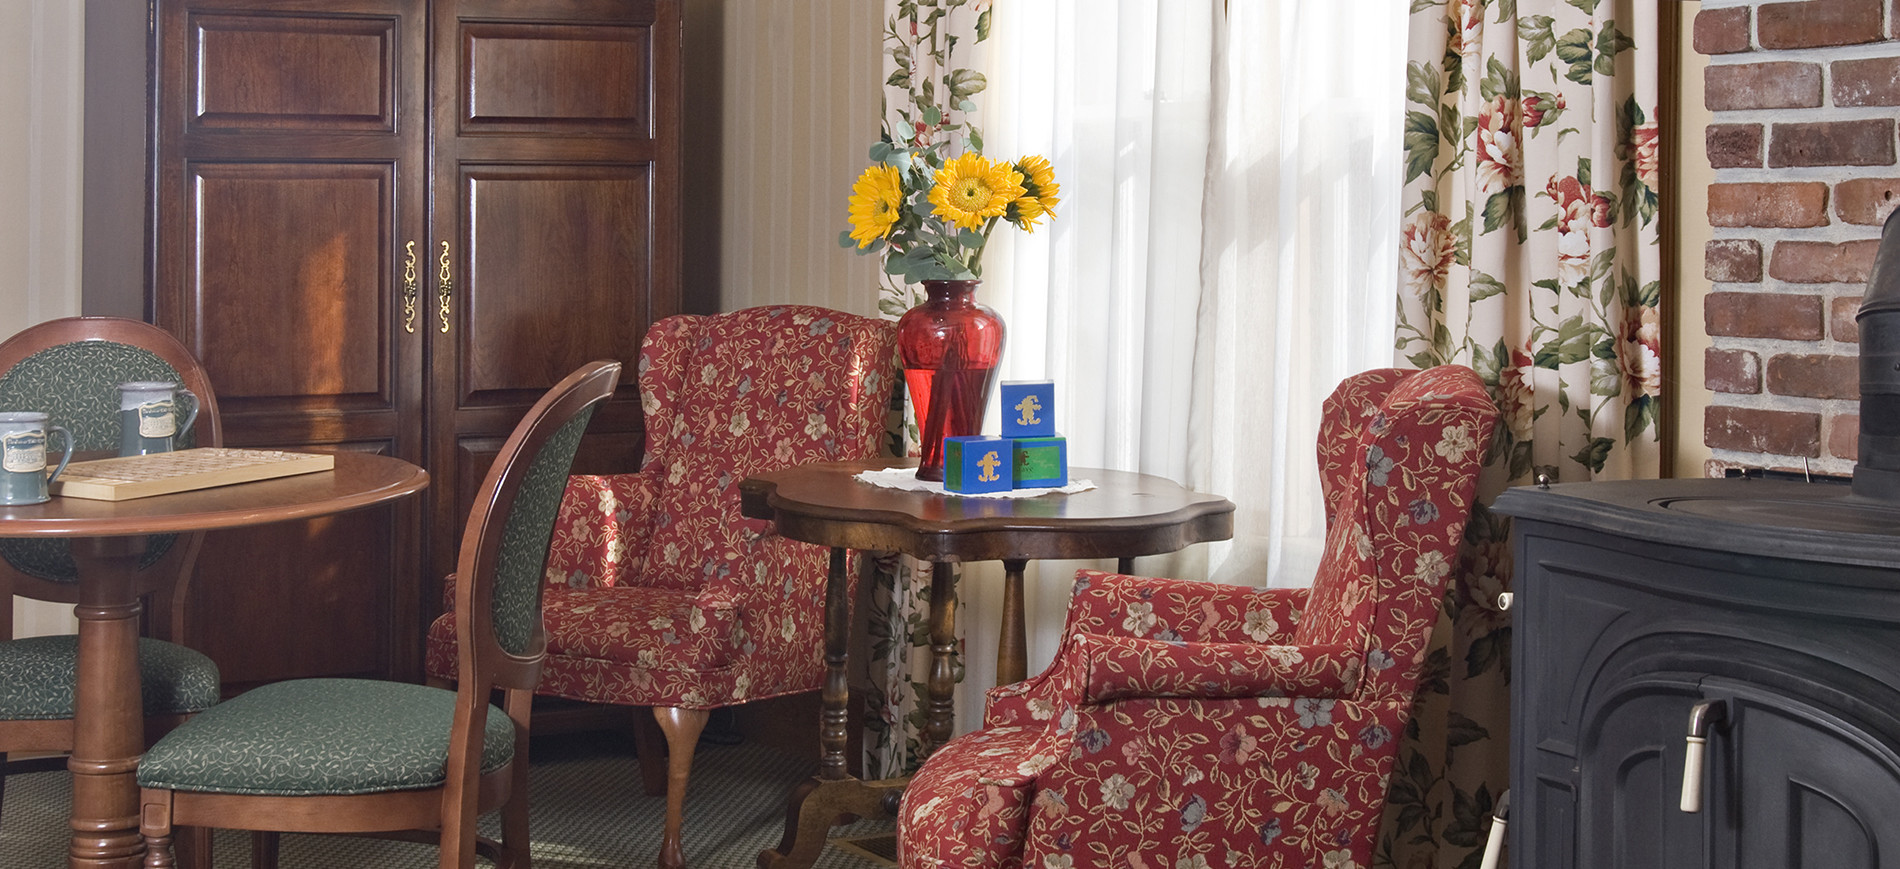 Two wing chairs next to round table with sunflowers in red vaser